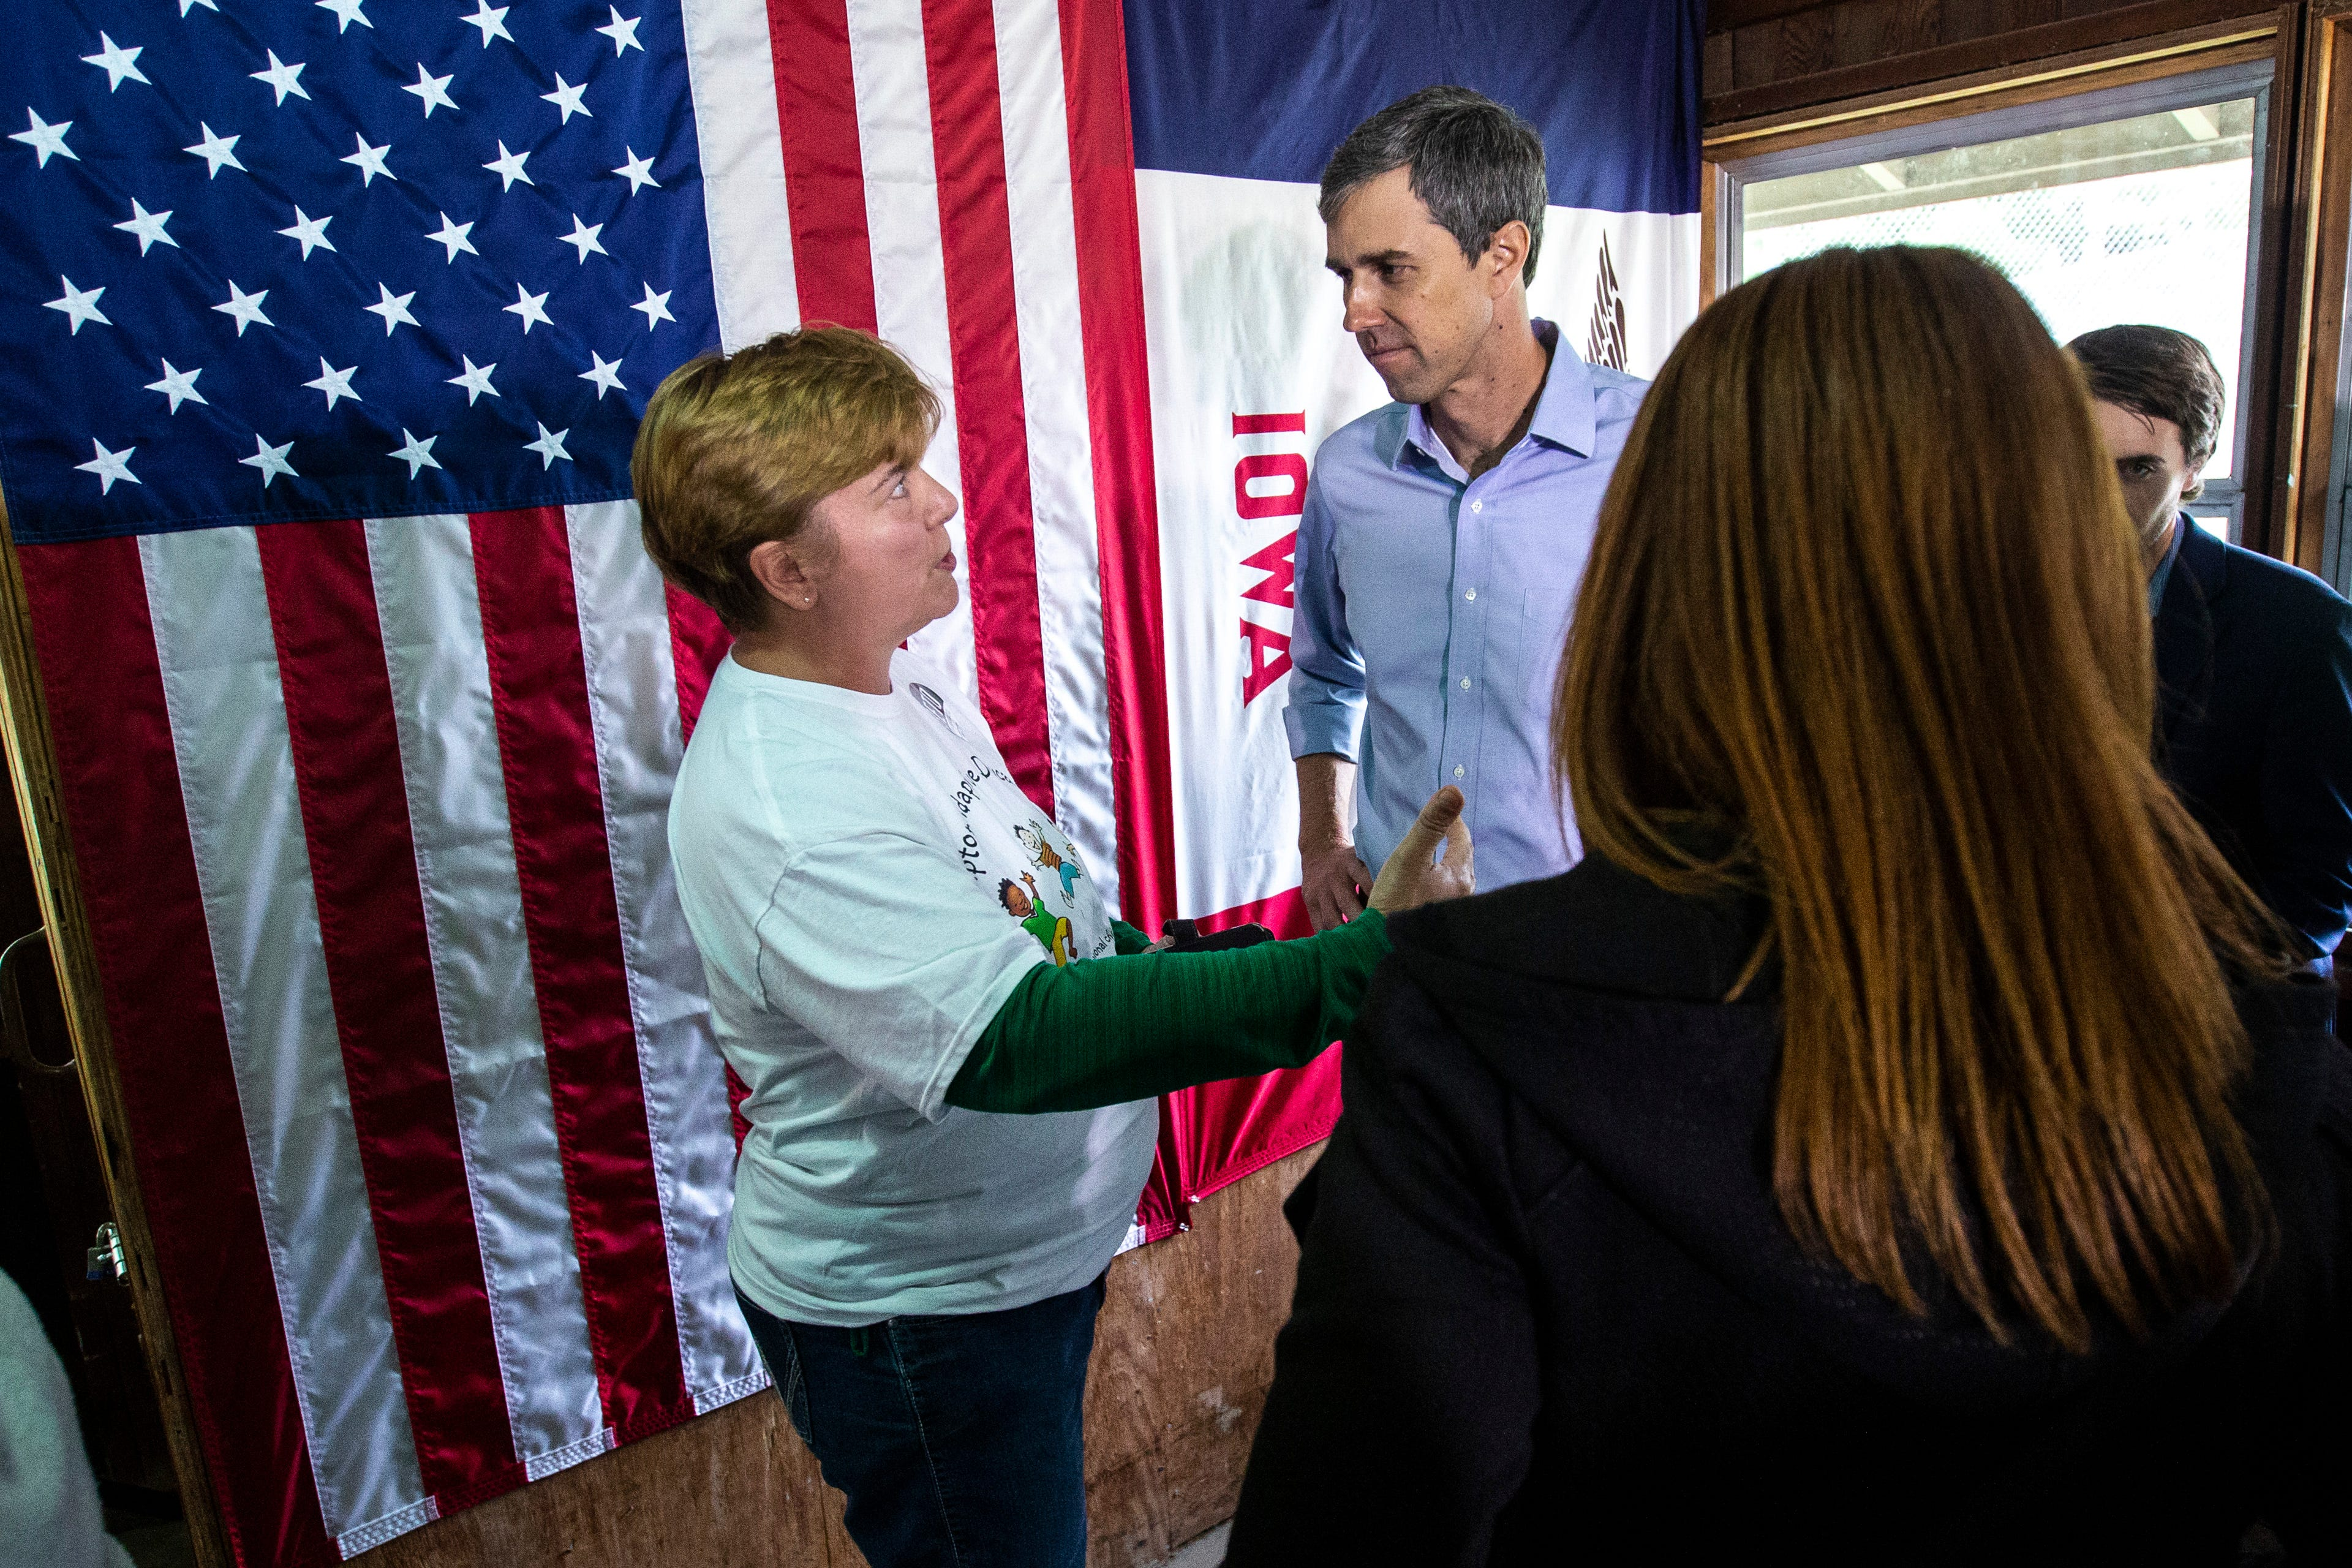 Beto O'Rourke addresses question about childcare during Iowa visit